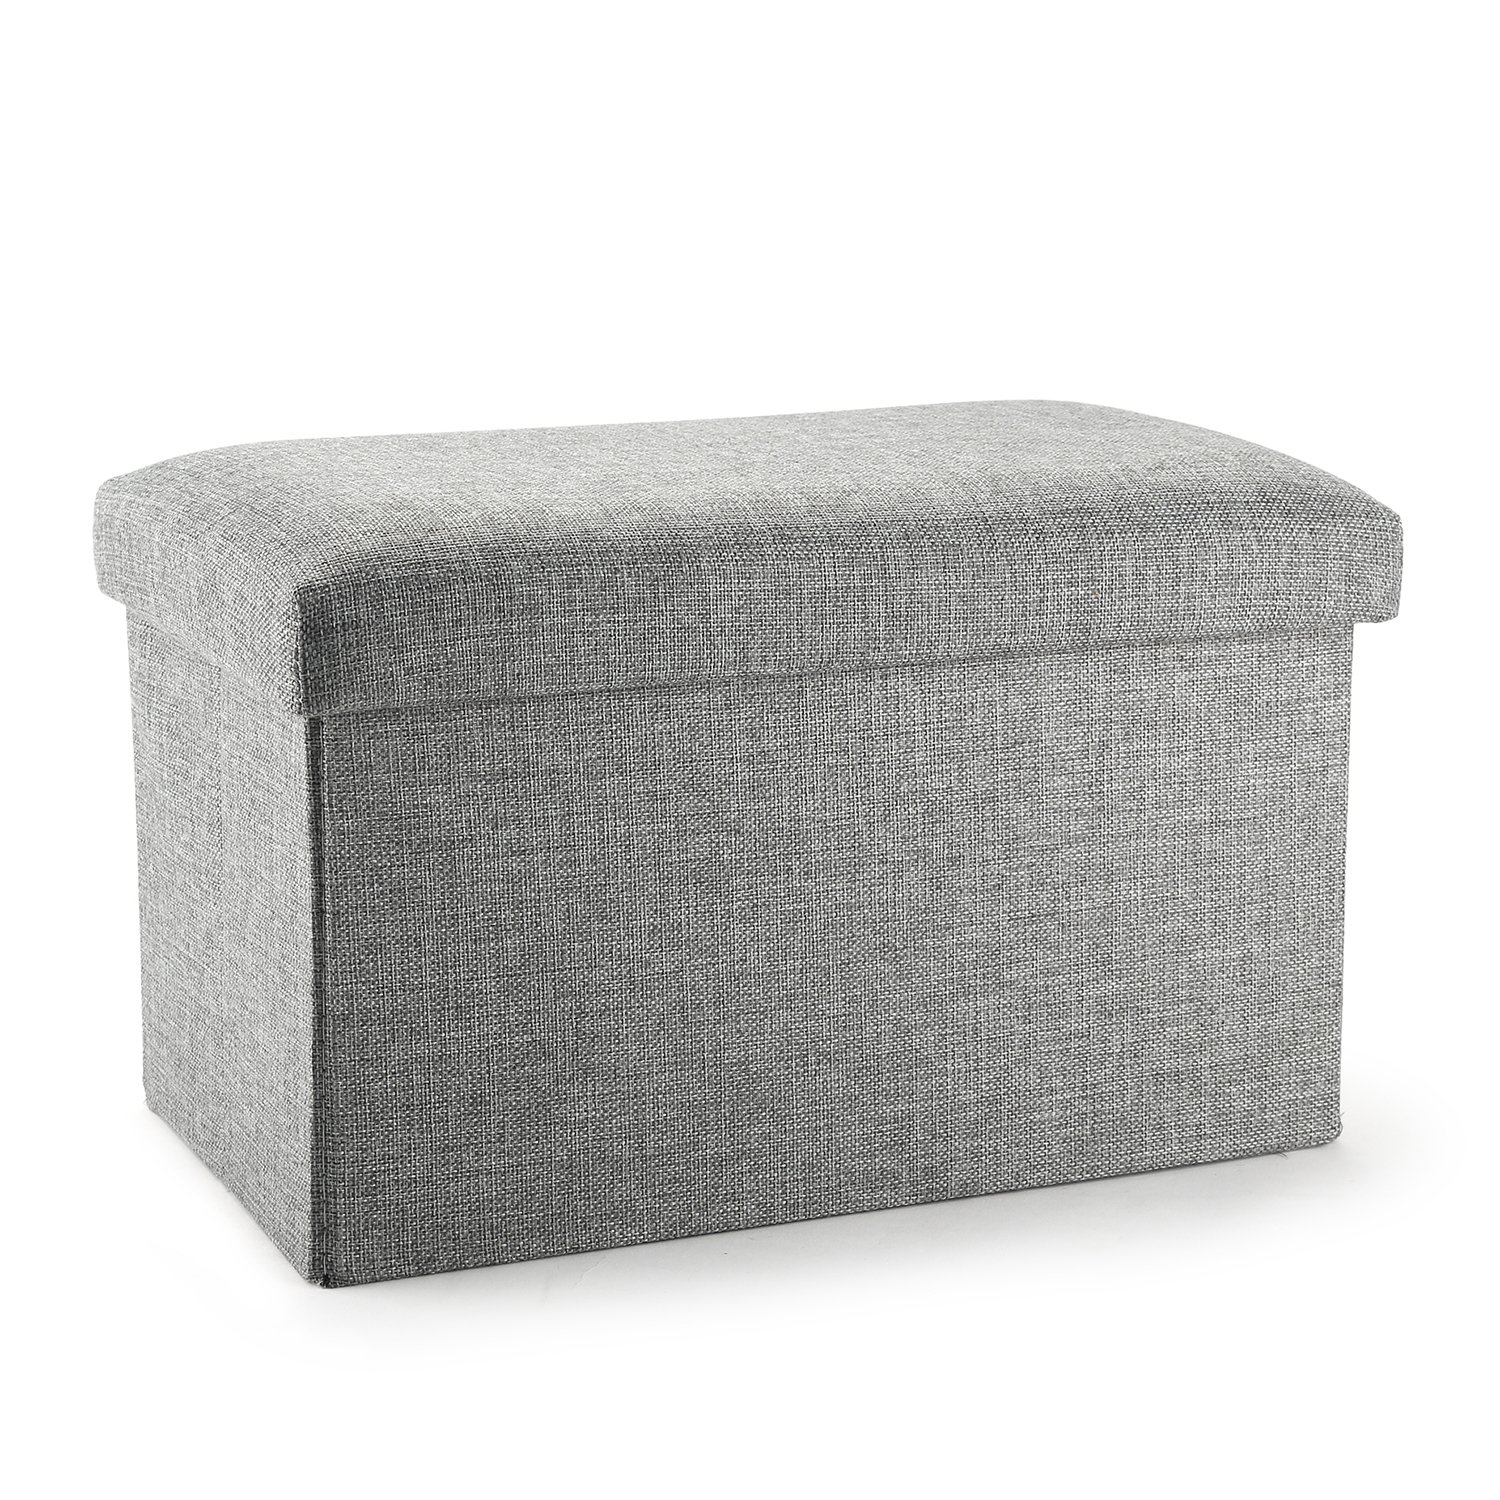 (Grey) - Ottoman Cube with Storage, Mee'life Linen Fabric Folding Organiser Storage Ottoman Basket Bins Boxes Containers with Lids for Office Home Foot Rest Stool/Seat 38cm (Grey) B07429K3VC Parent